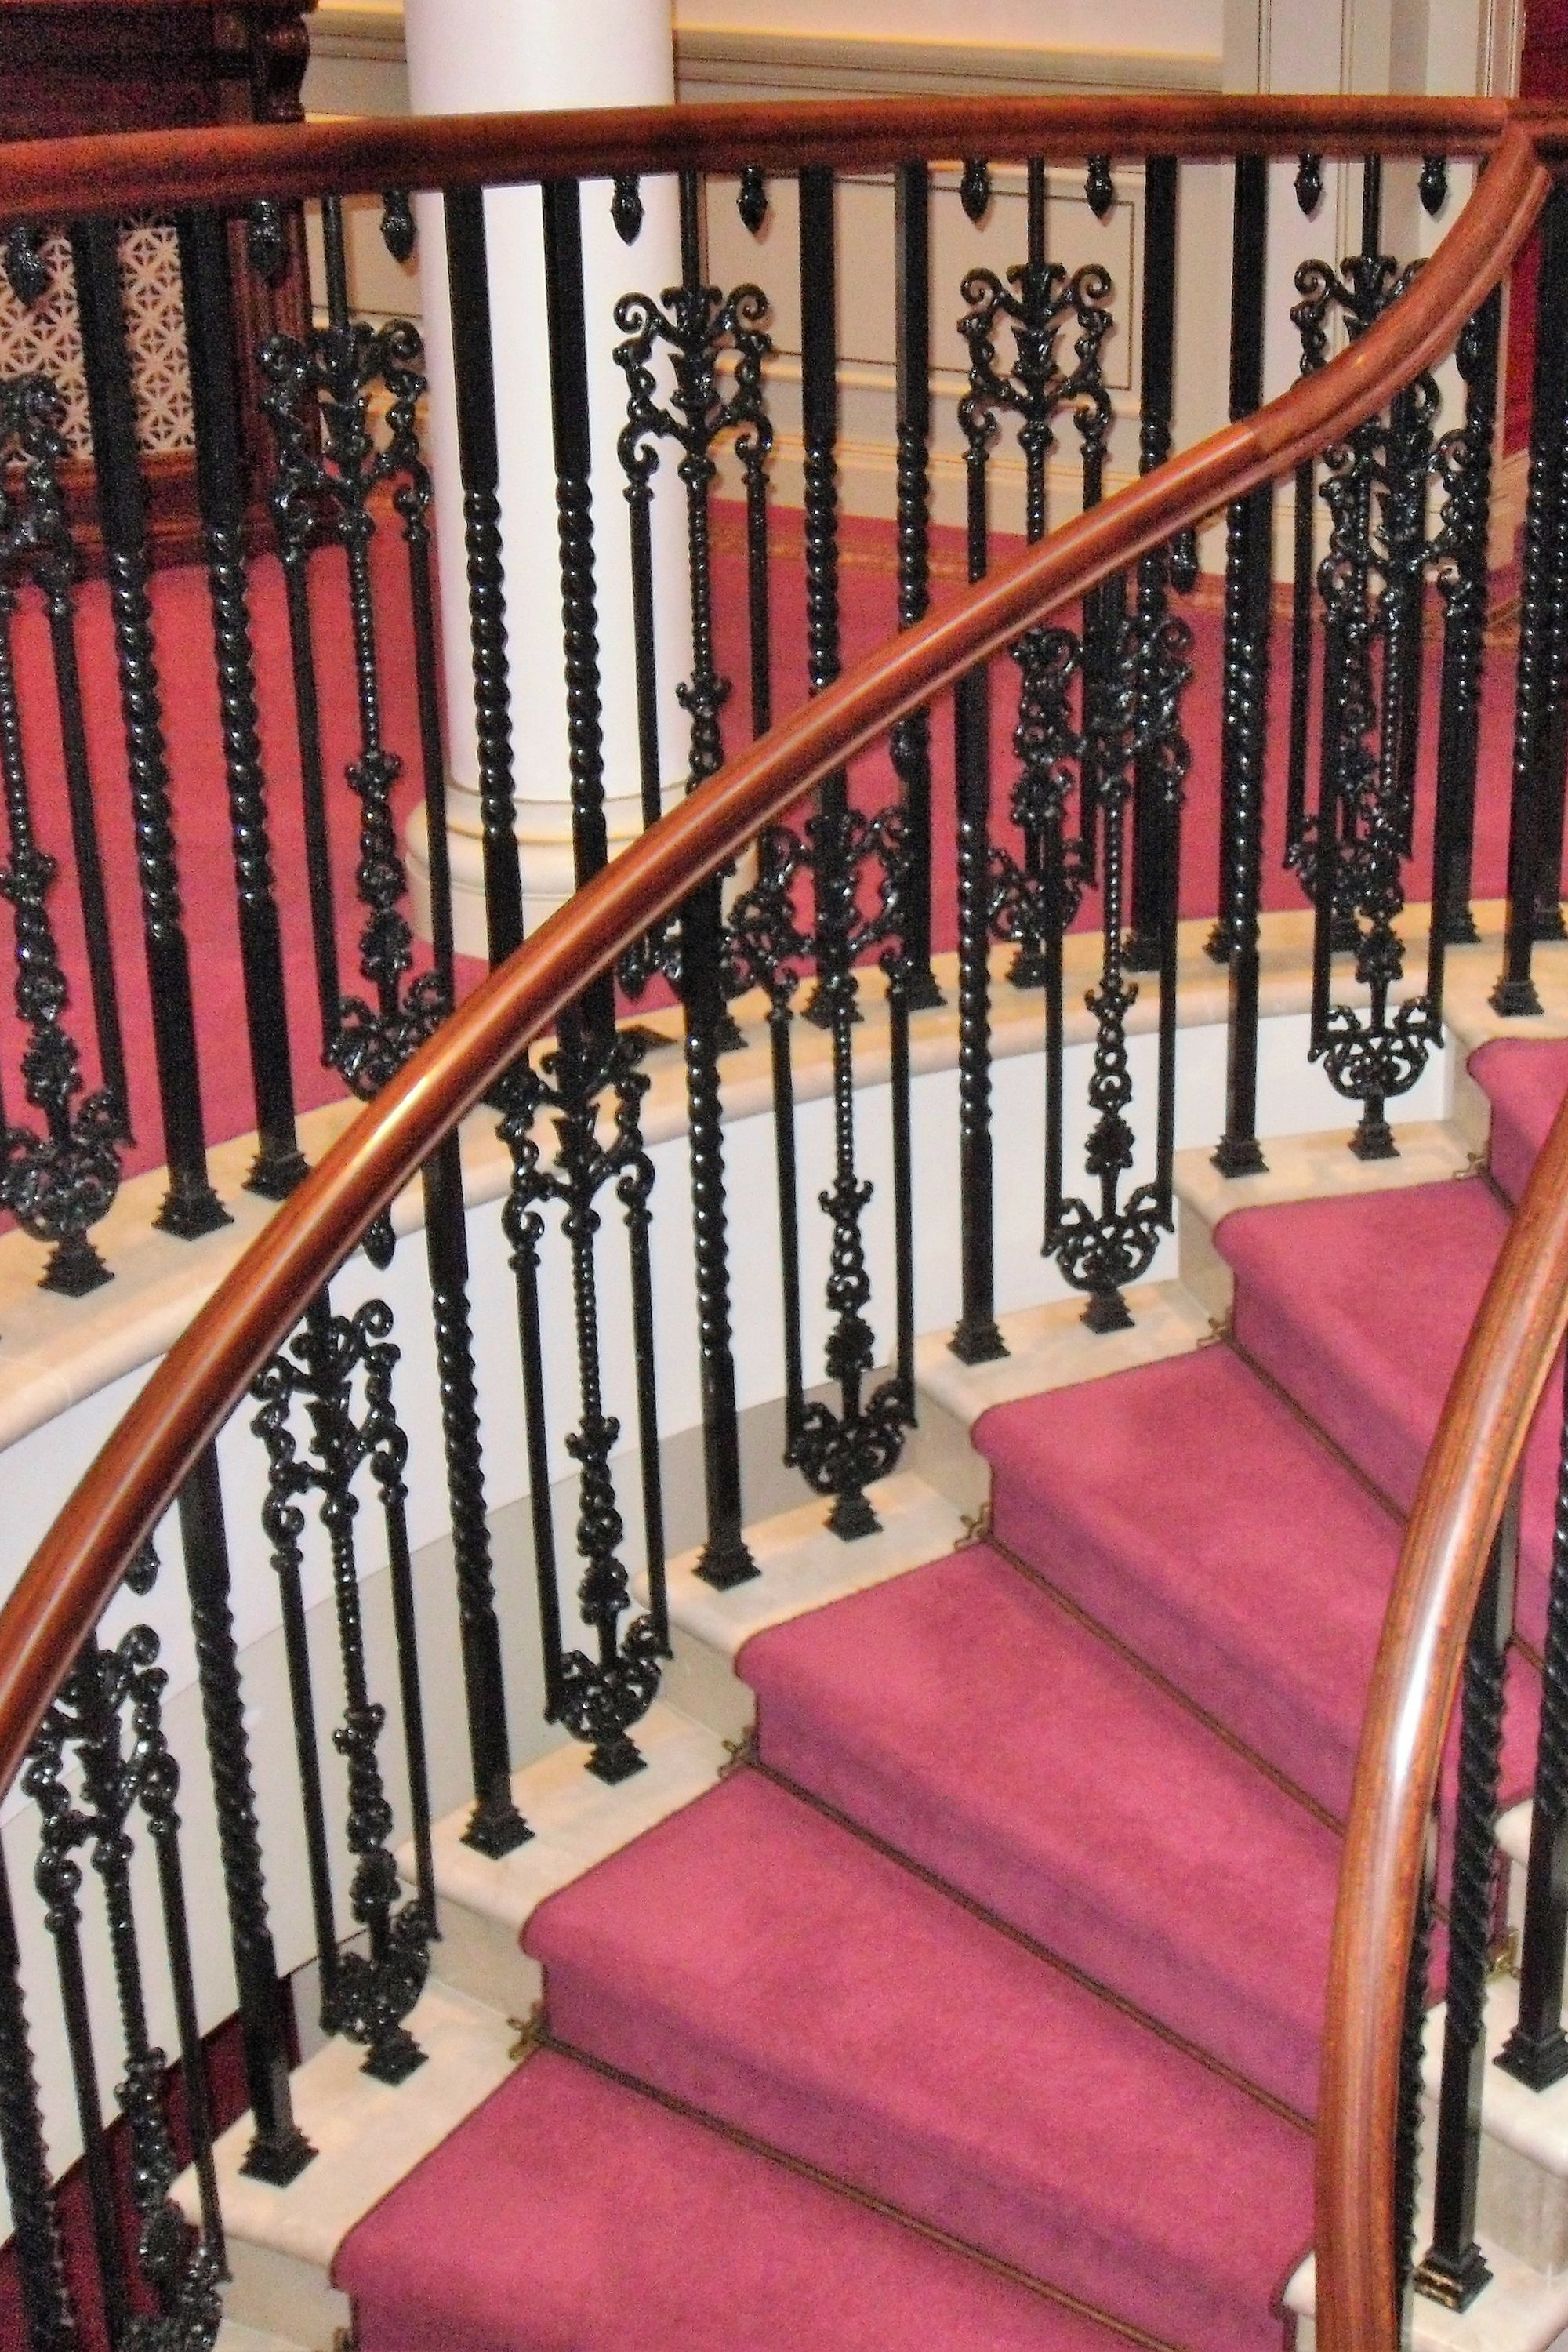 Balustrade on stairs in the London Palladium